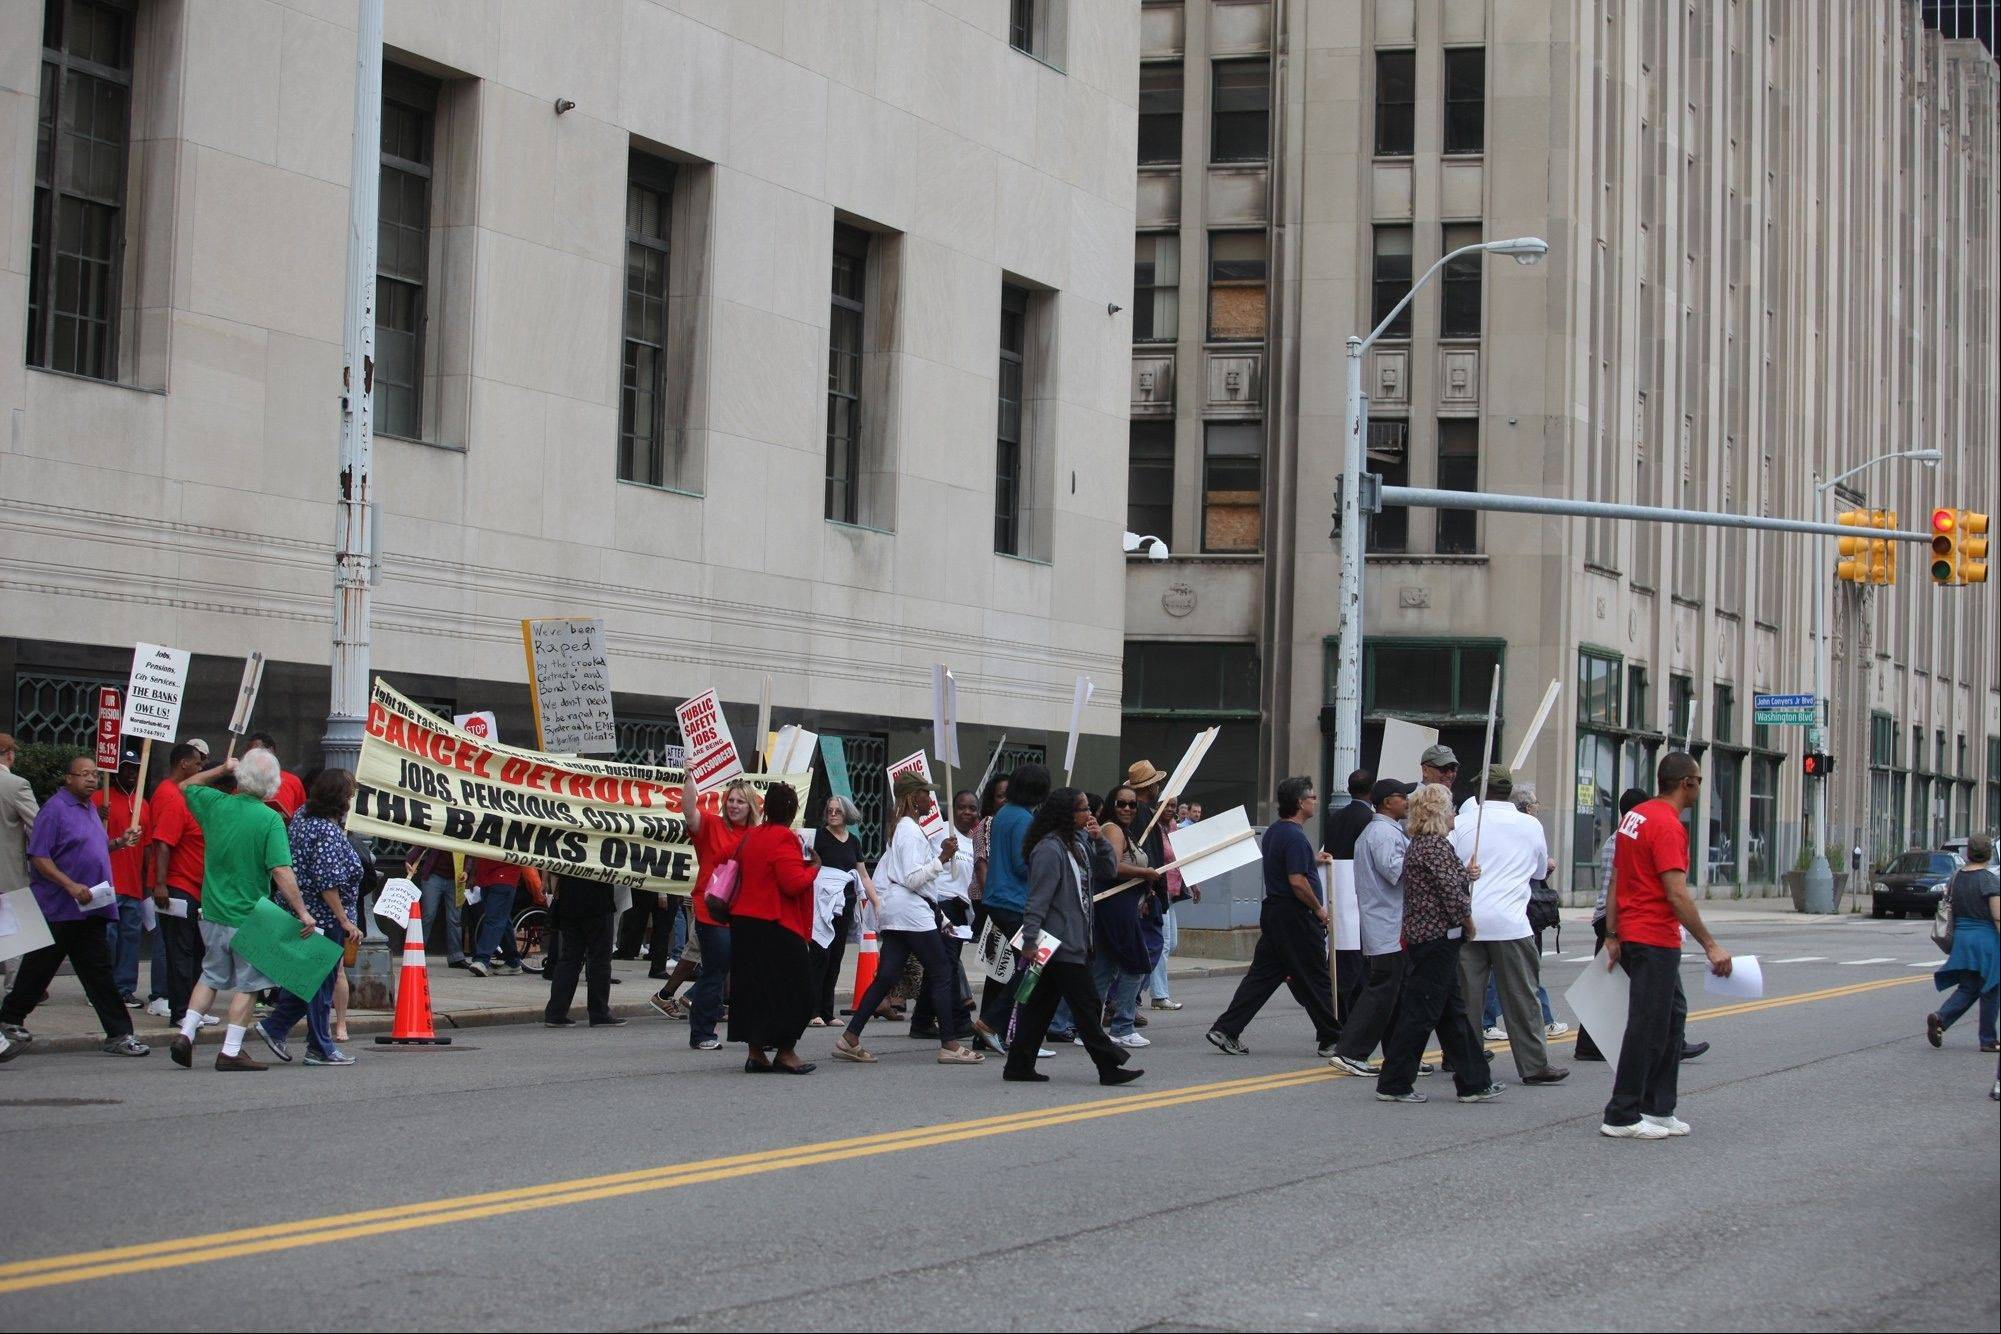 Protesters cross the street in front of federal court in Detroit Friday, Aug. 2, 2013. Candidates in Detroit�s mayoral primary are racing to lead the largest U.S. city ever to file for bankruptcy, while yielding complete control of its finances to a state-appointed emergency manager.